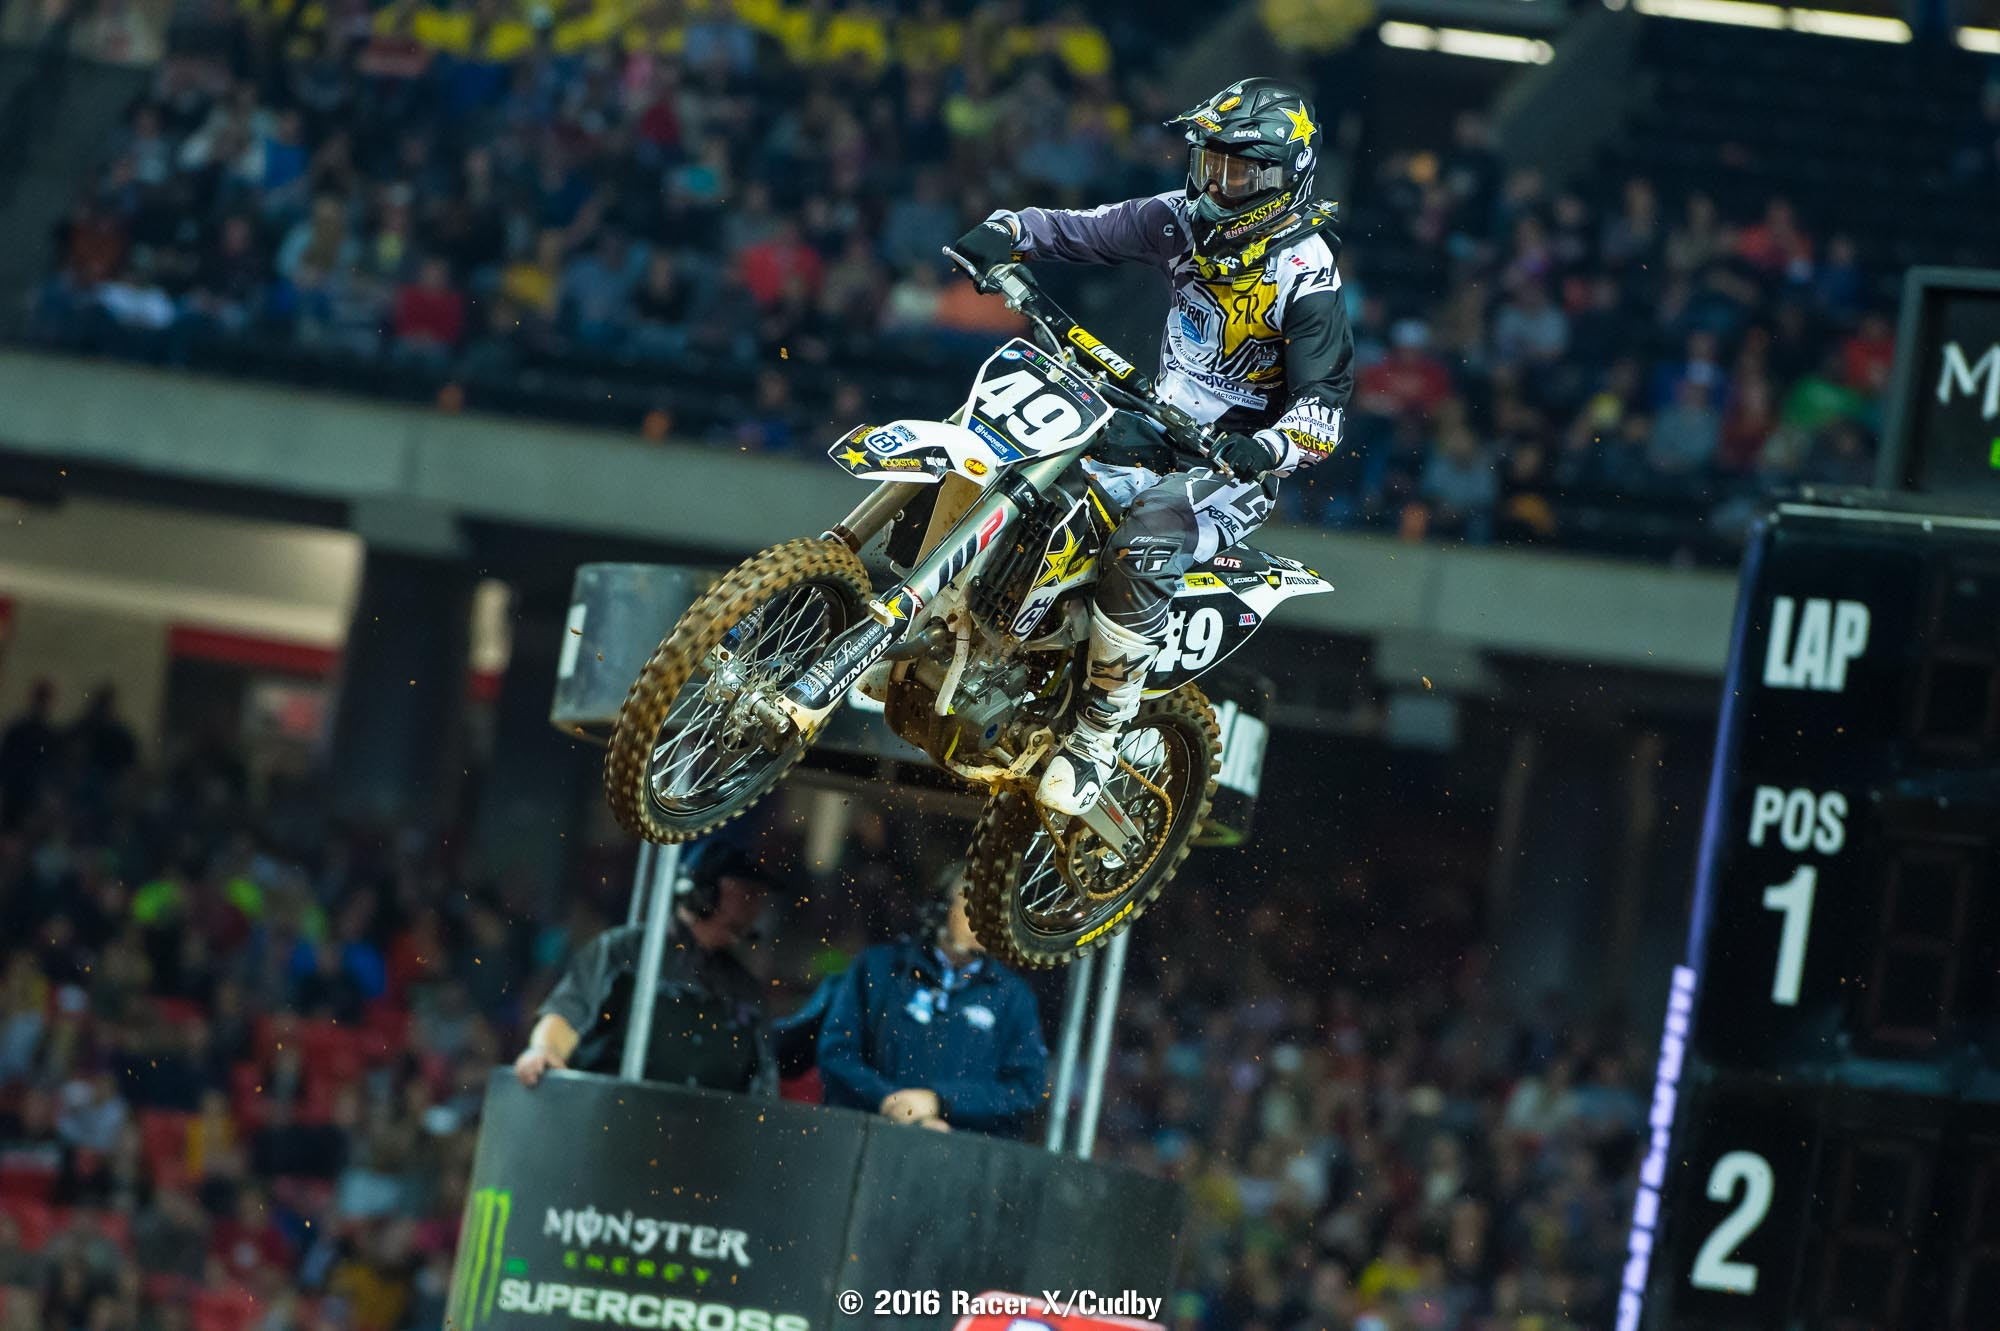 Davalos rode effortlessly up front and controlled the race to the end.